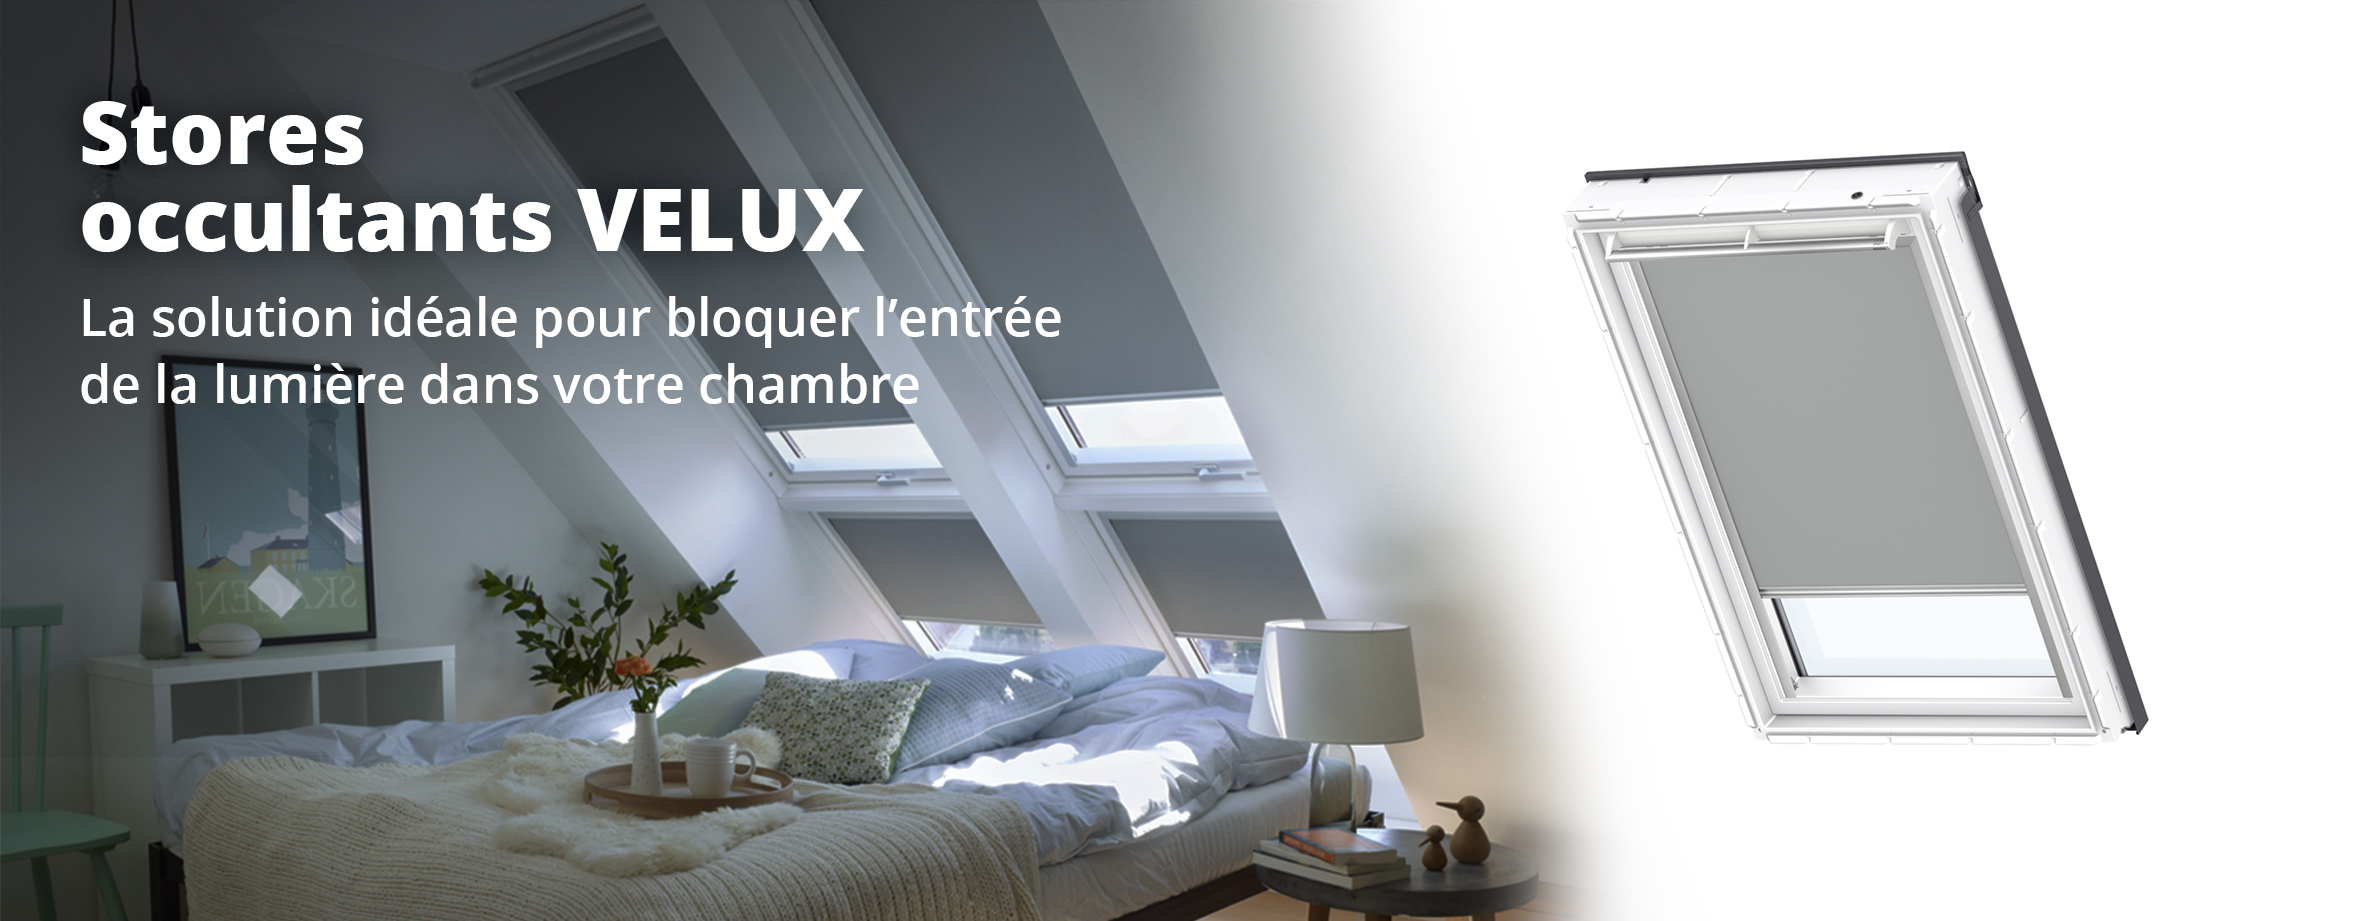 Stores d'occultation VELUX